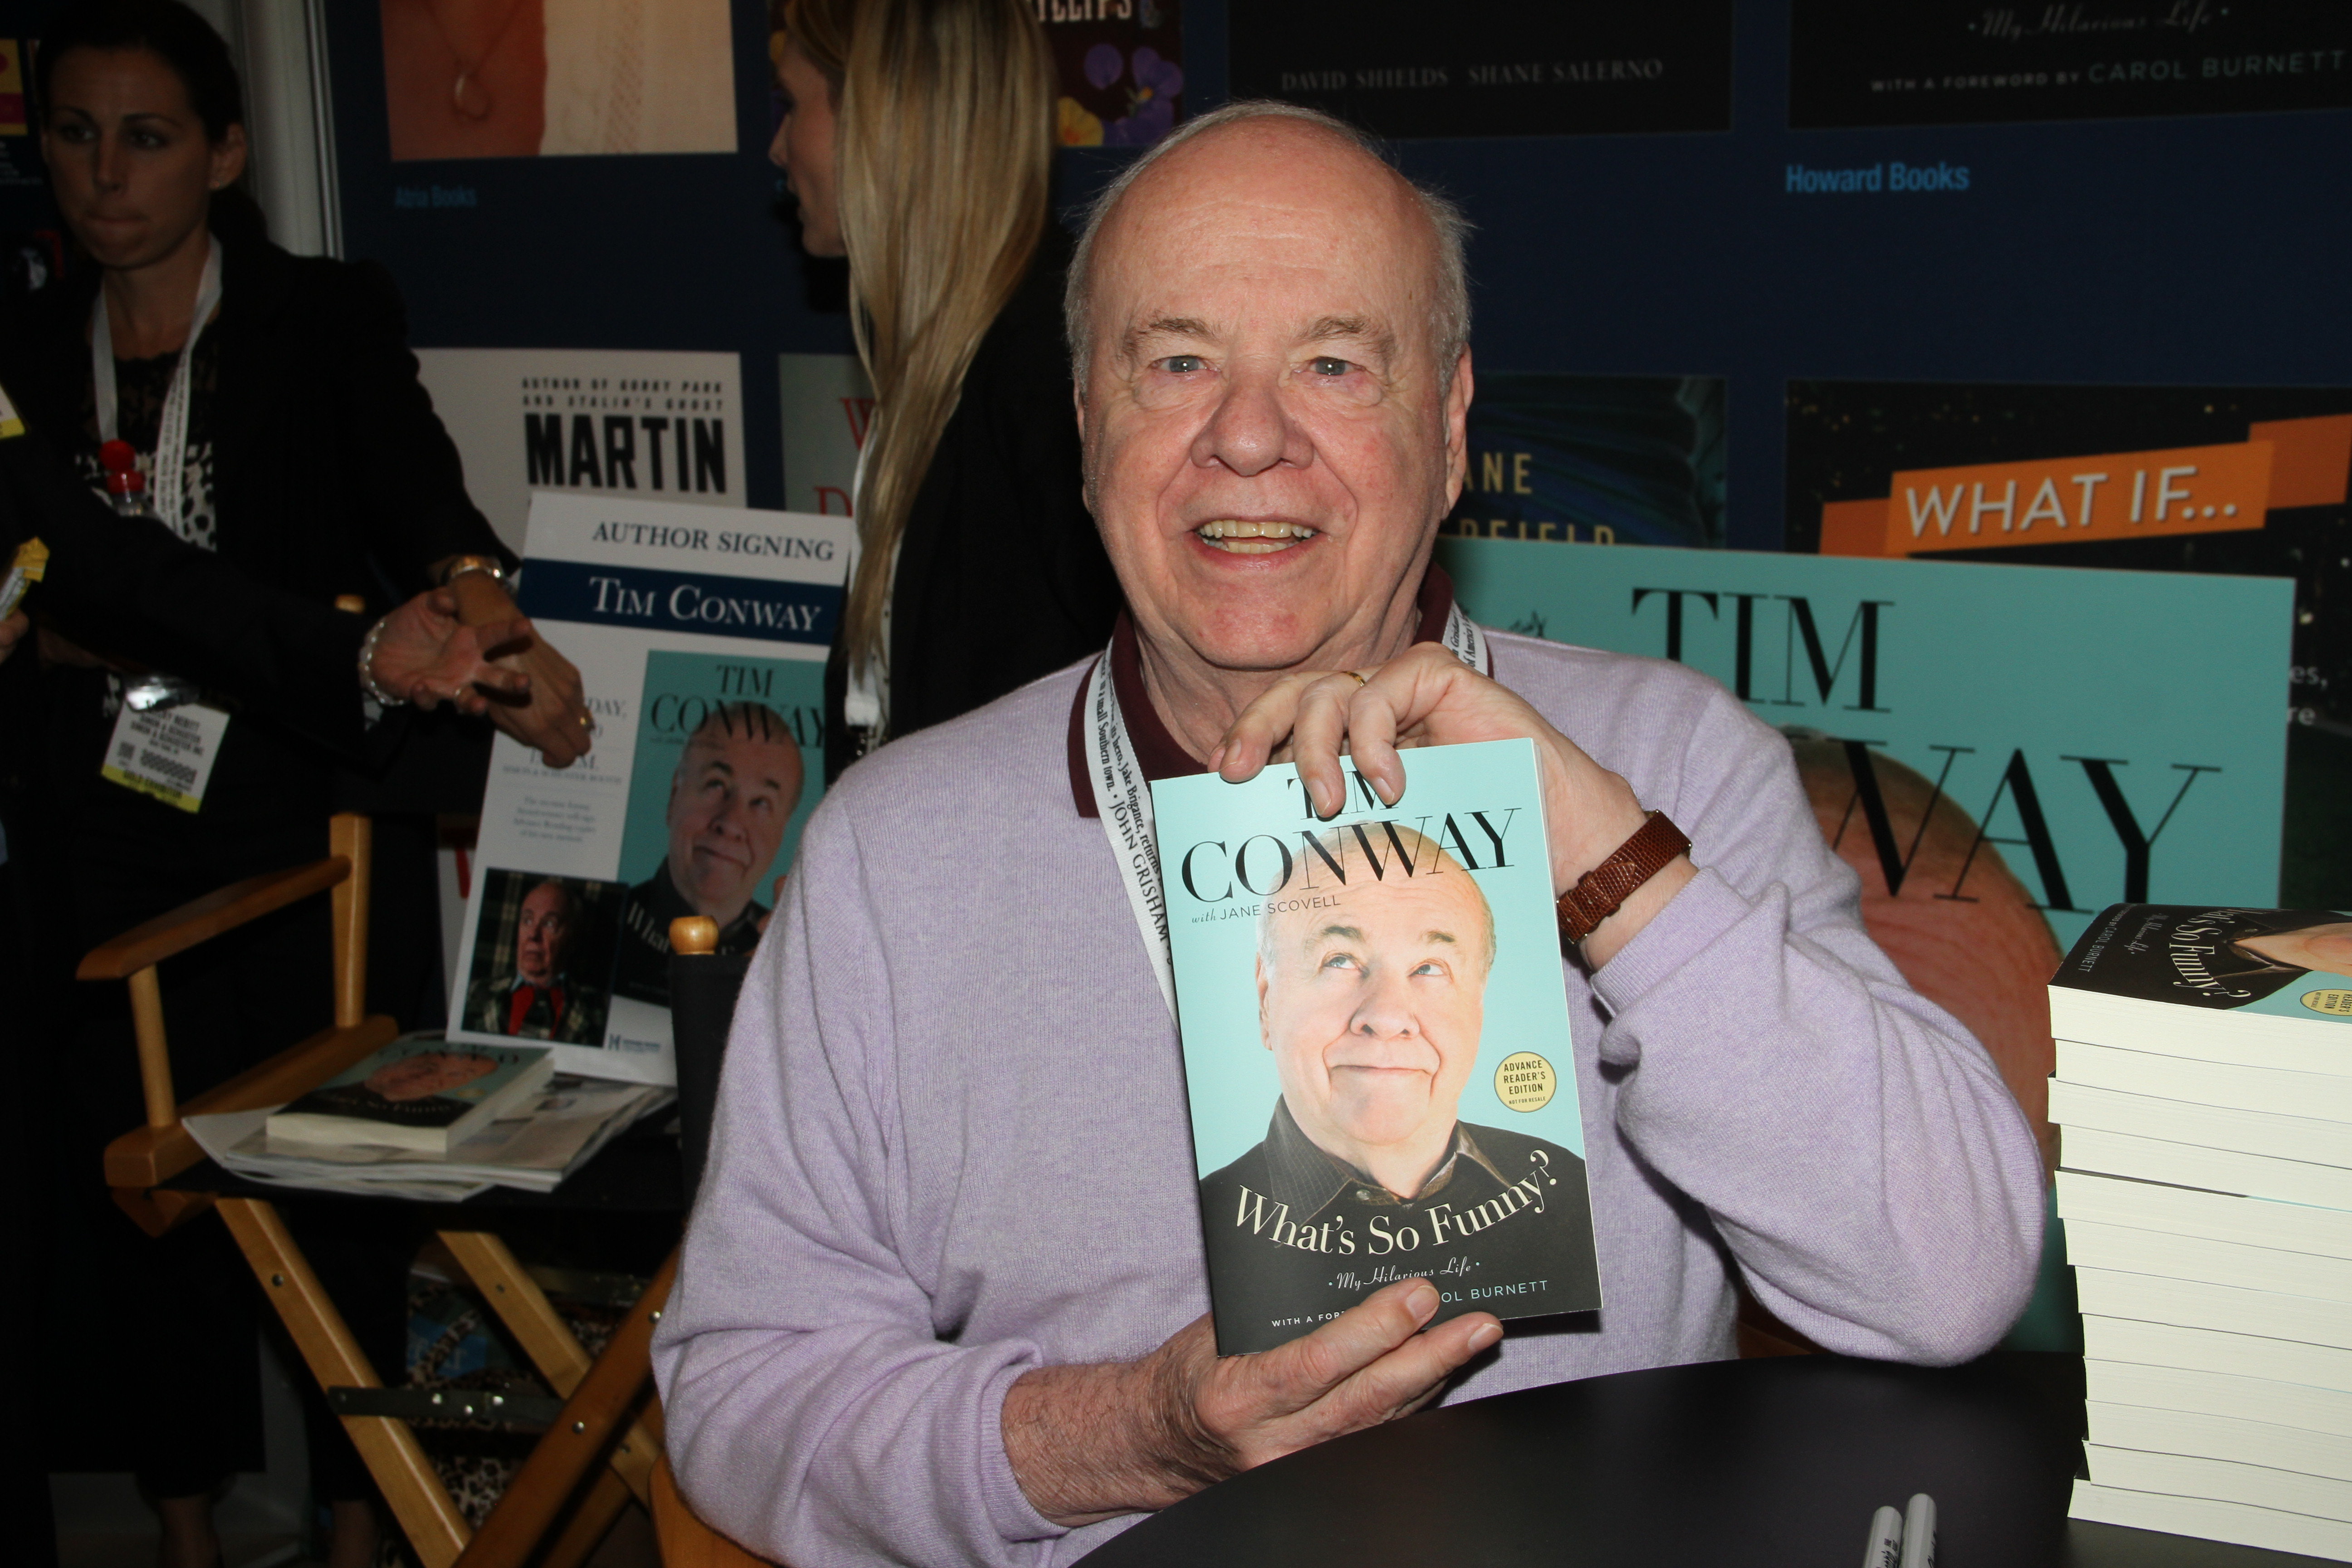 Tim Conway With His New Book